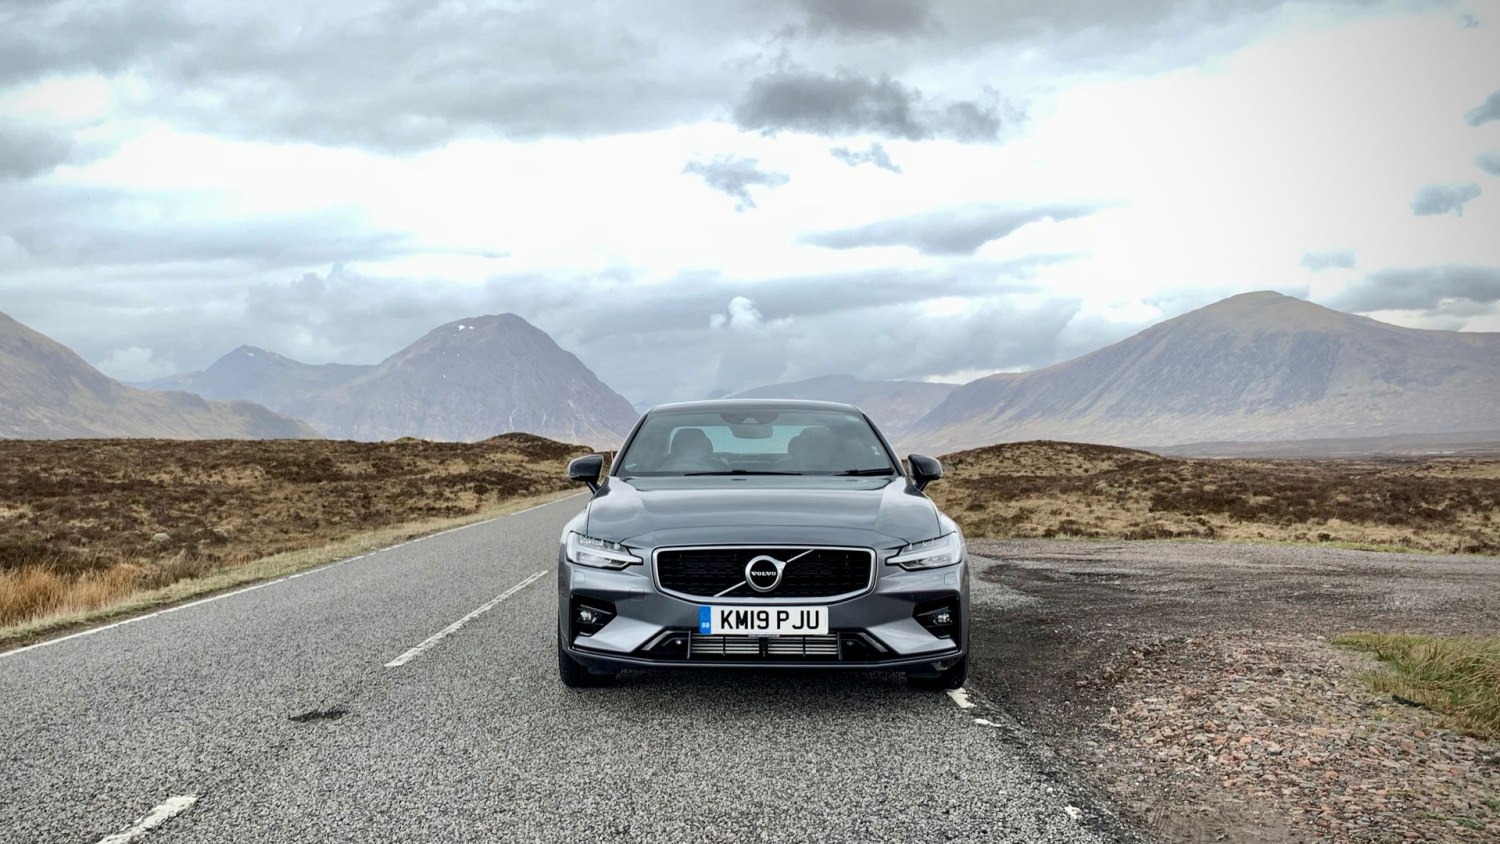 Volvo S60 in Scotland